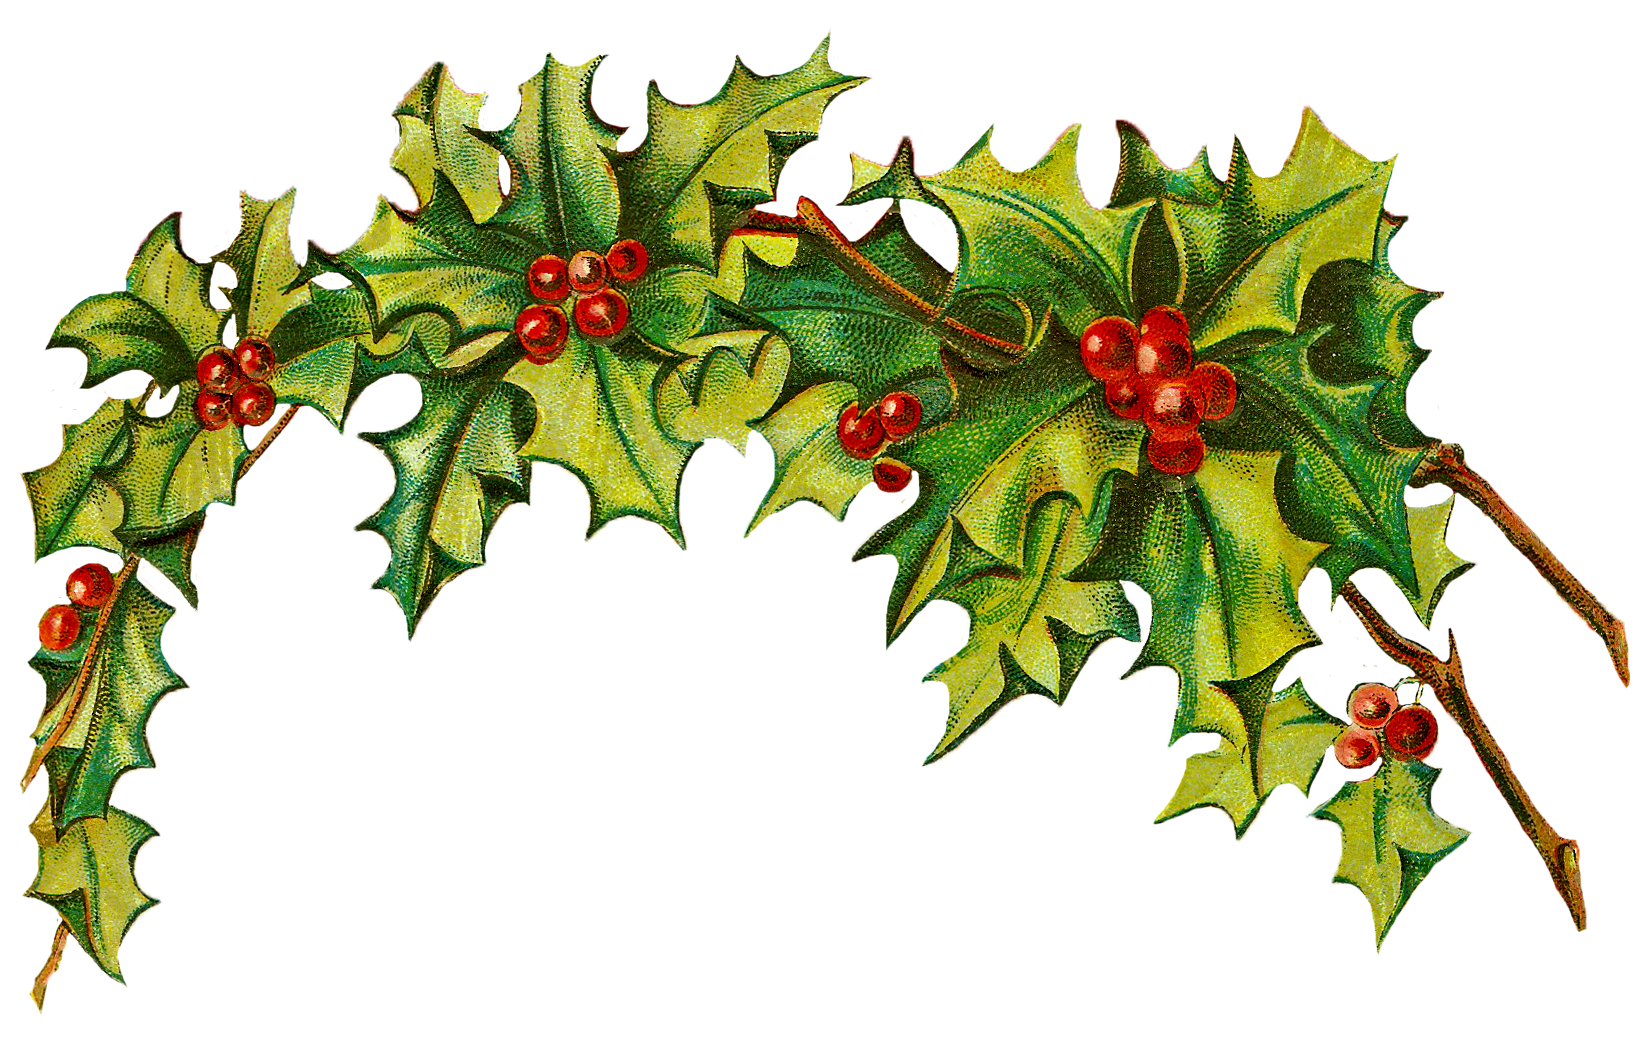 Christmas Card Clipart At Getdrawings Free For Personal Use